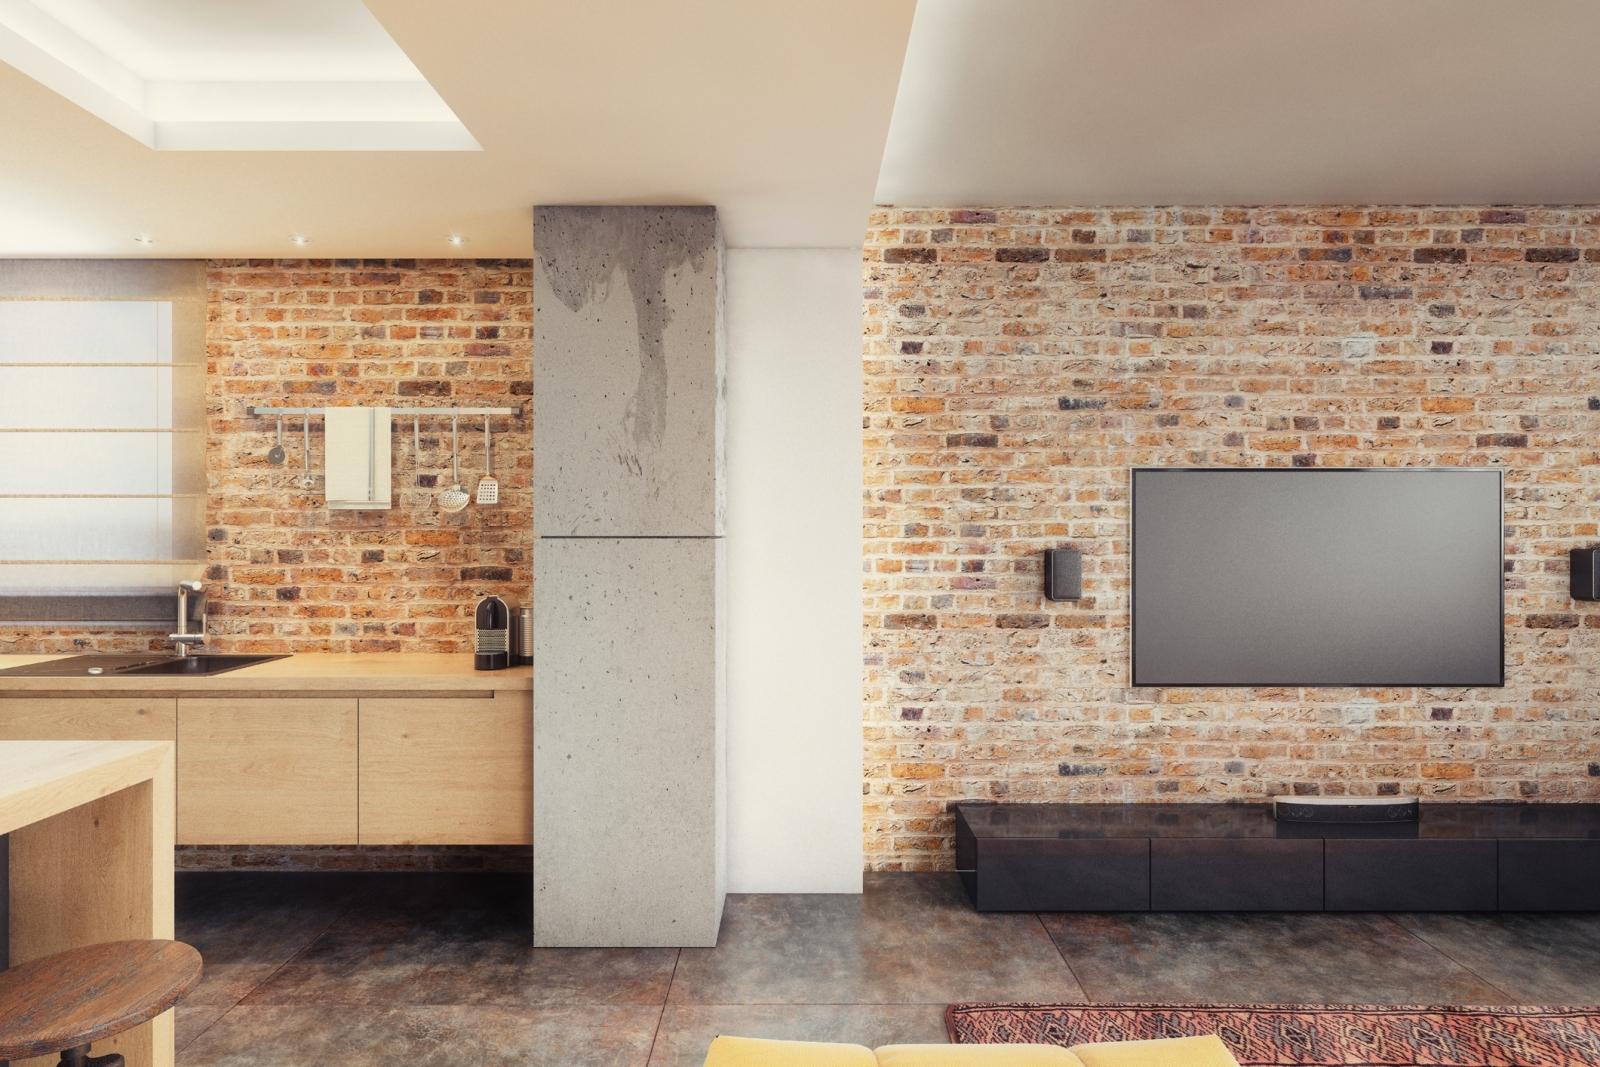 Brick Wall Design How To Hang Things On Brick Advice For Shelves Tvs Etc